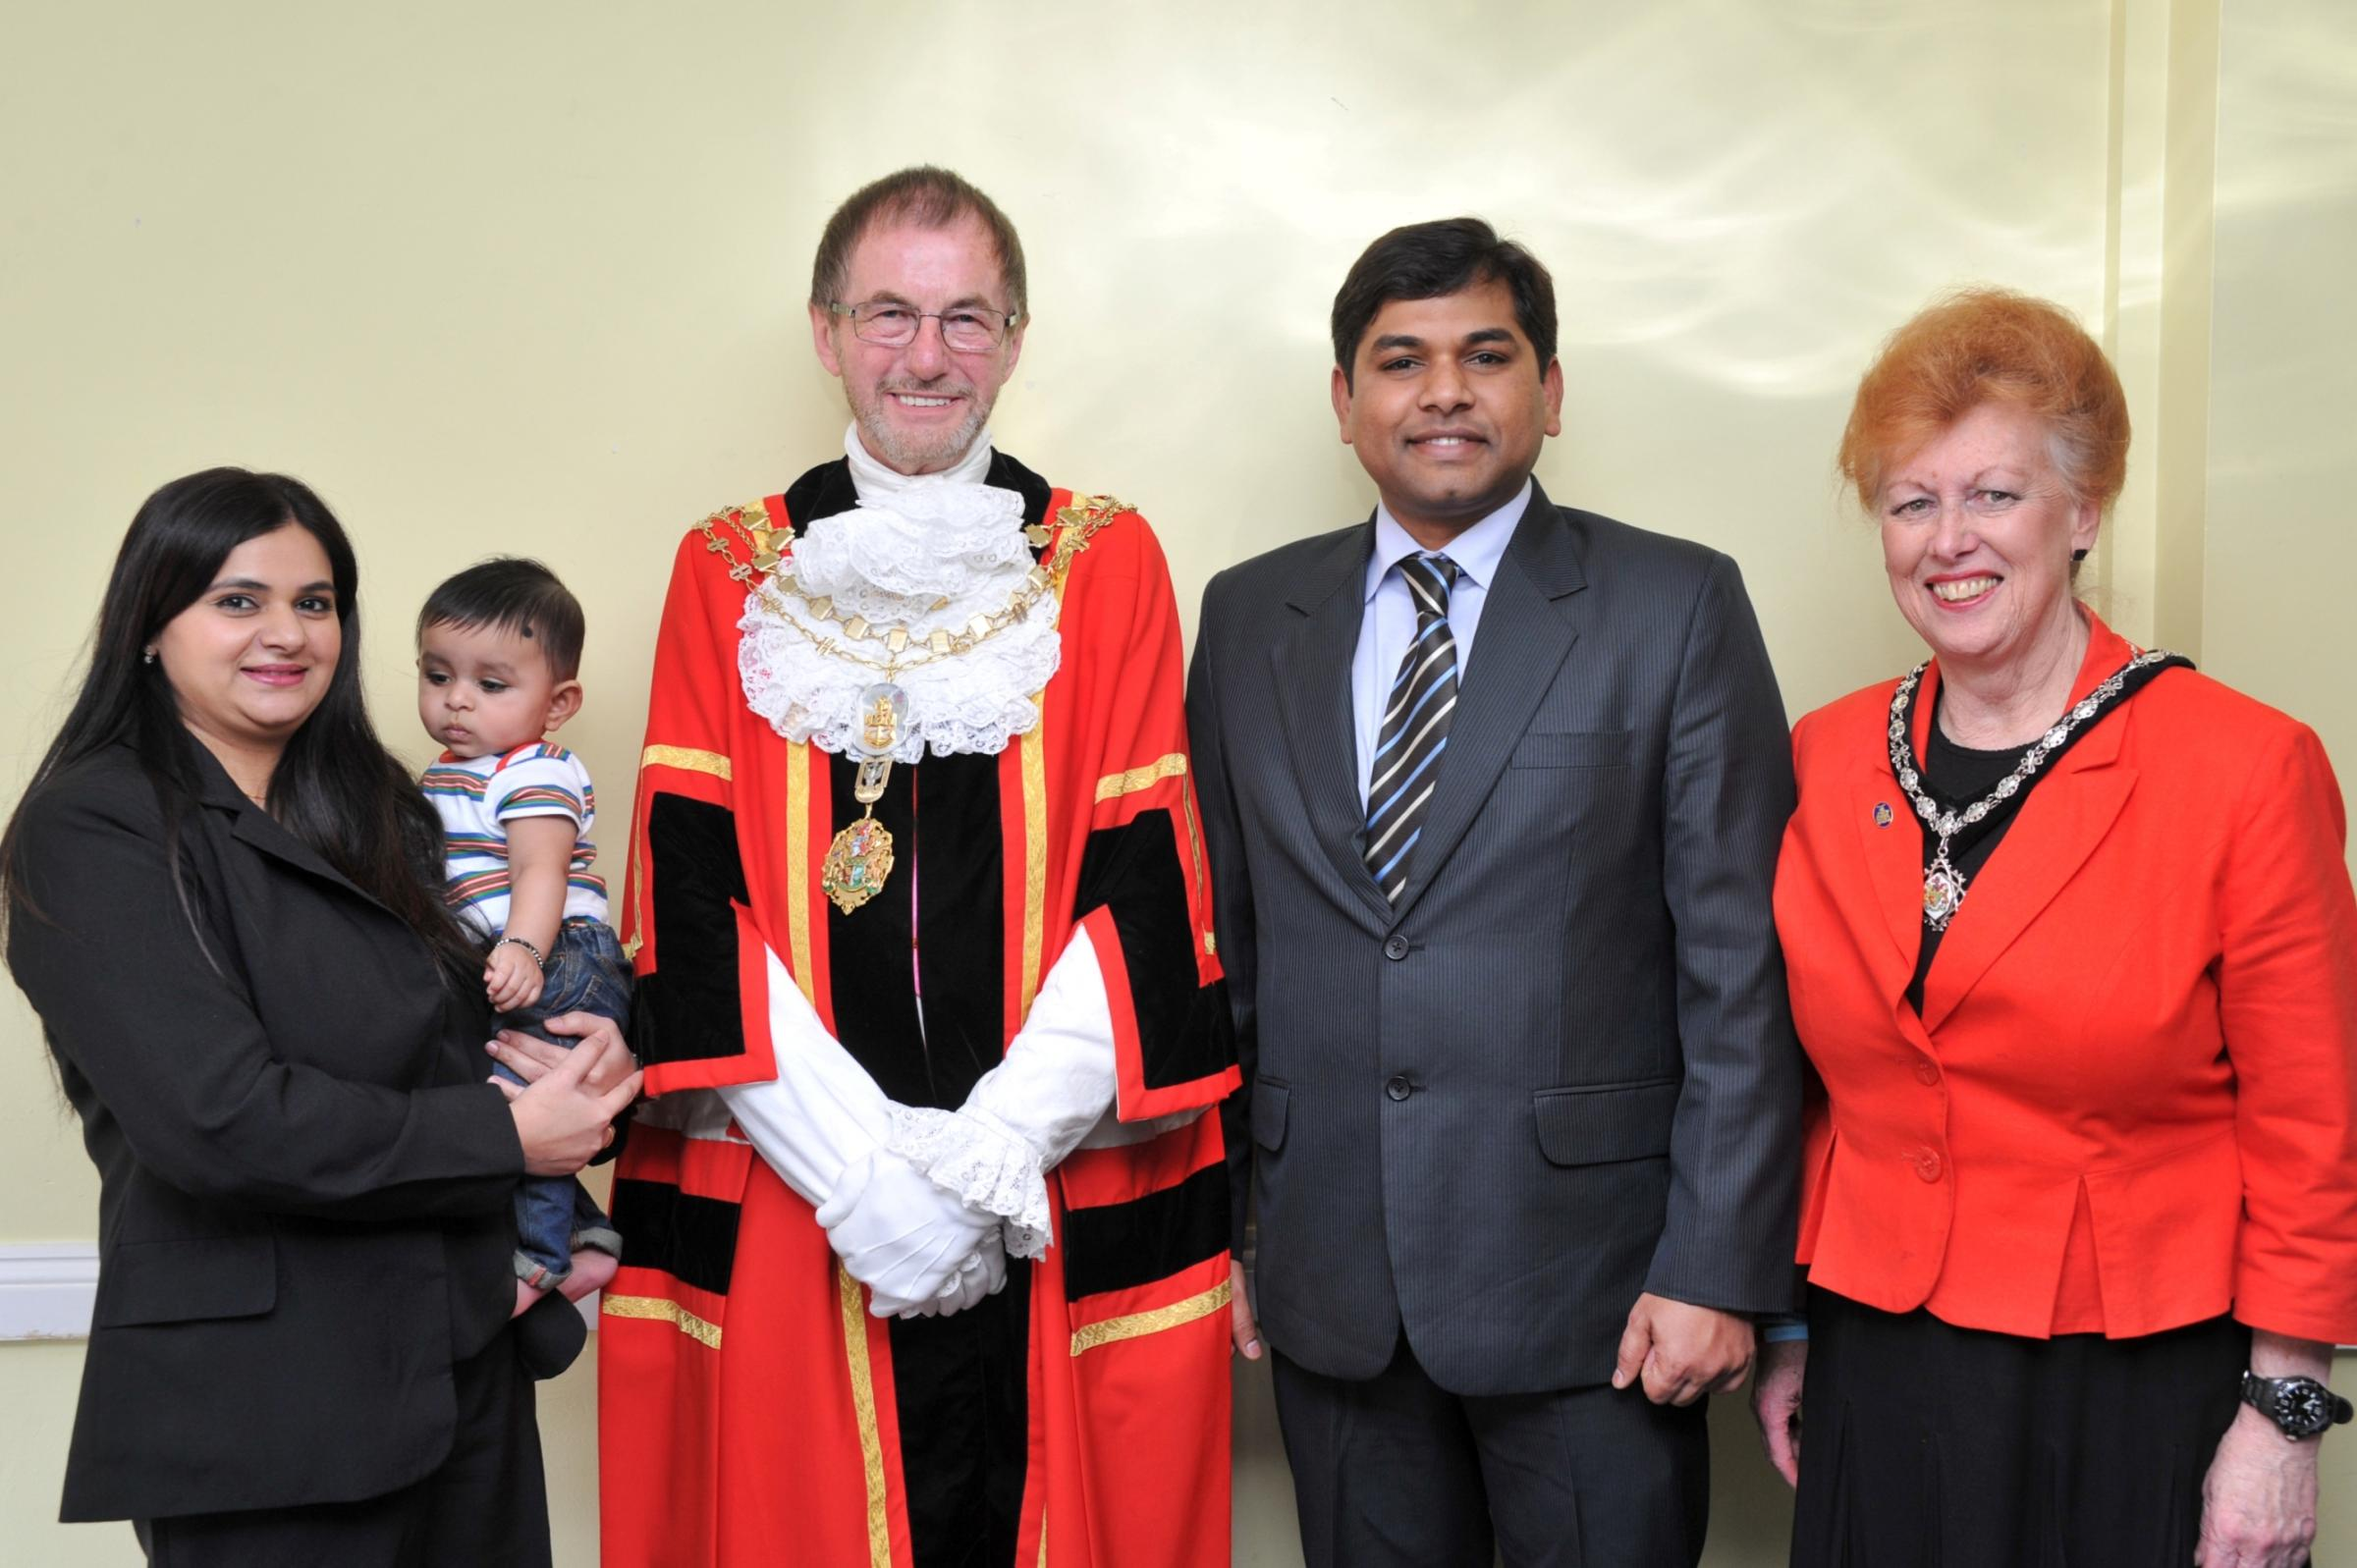 Welcome: the Nampally family with the Mayor and his wife Lynne. Photo by Mike Woollard of Paul Rose Photography